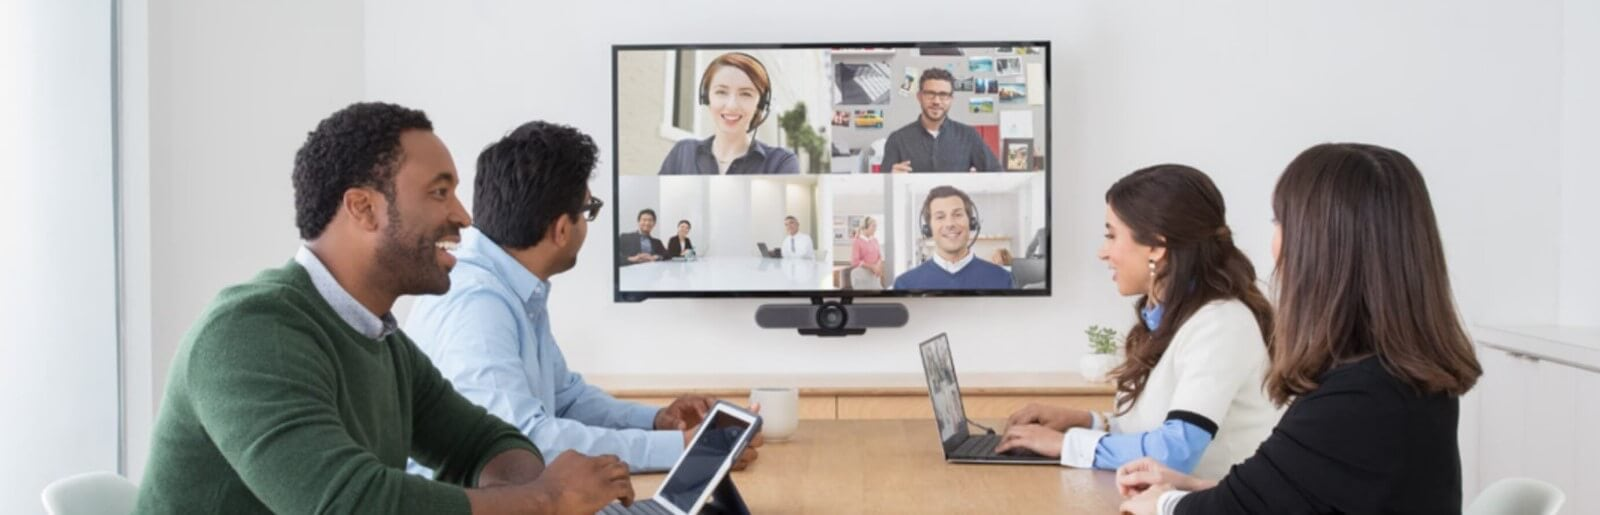 Logitech video conferencing meeting room